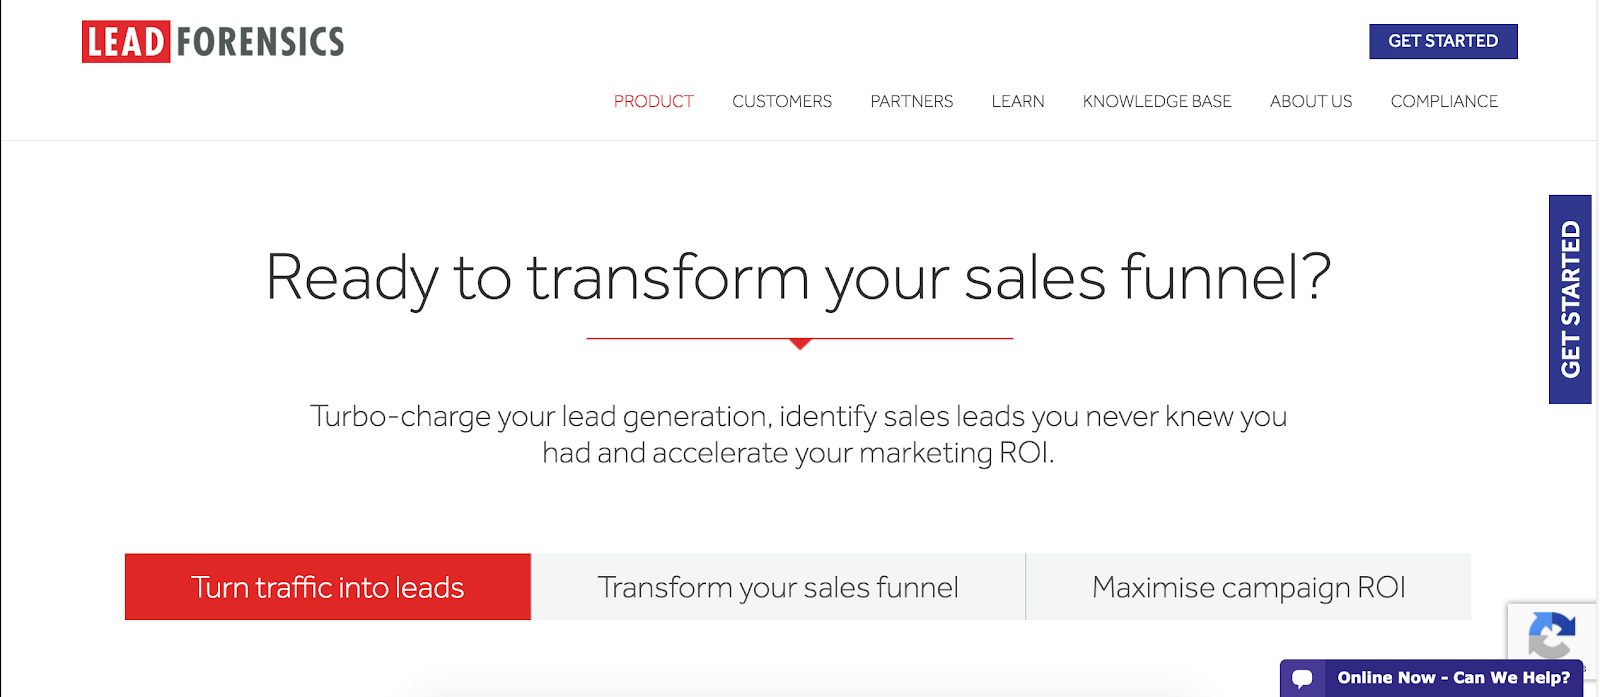 Lead Forensics | 10 Most Innovative Lead Generation Tools for 2019